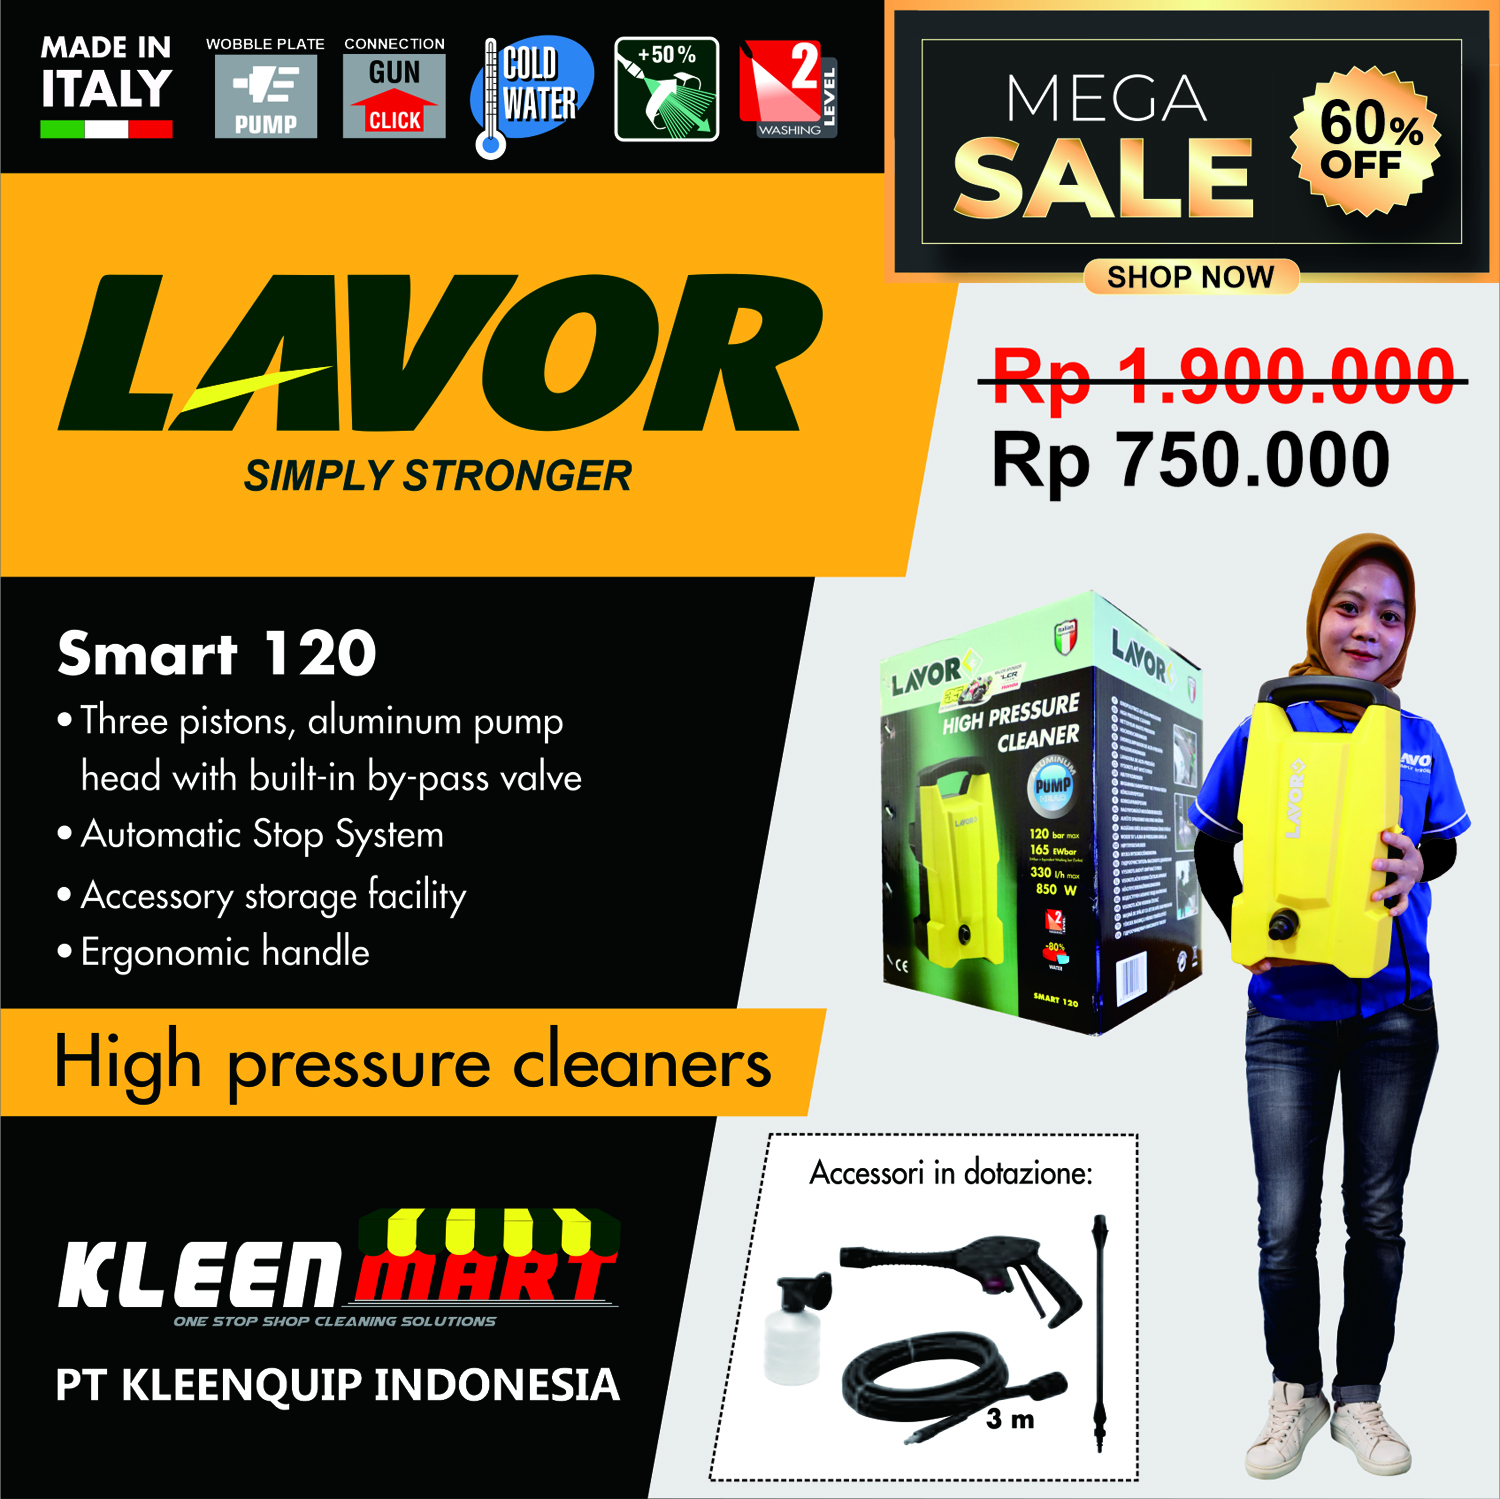 SMART 120 - HIGH PRESSURE CLEANER LAVOR MADE IN ITALY